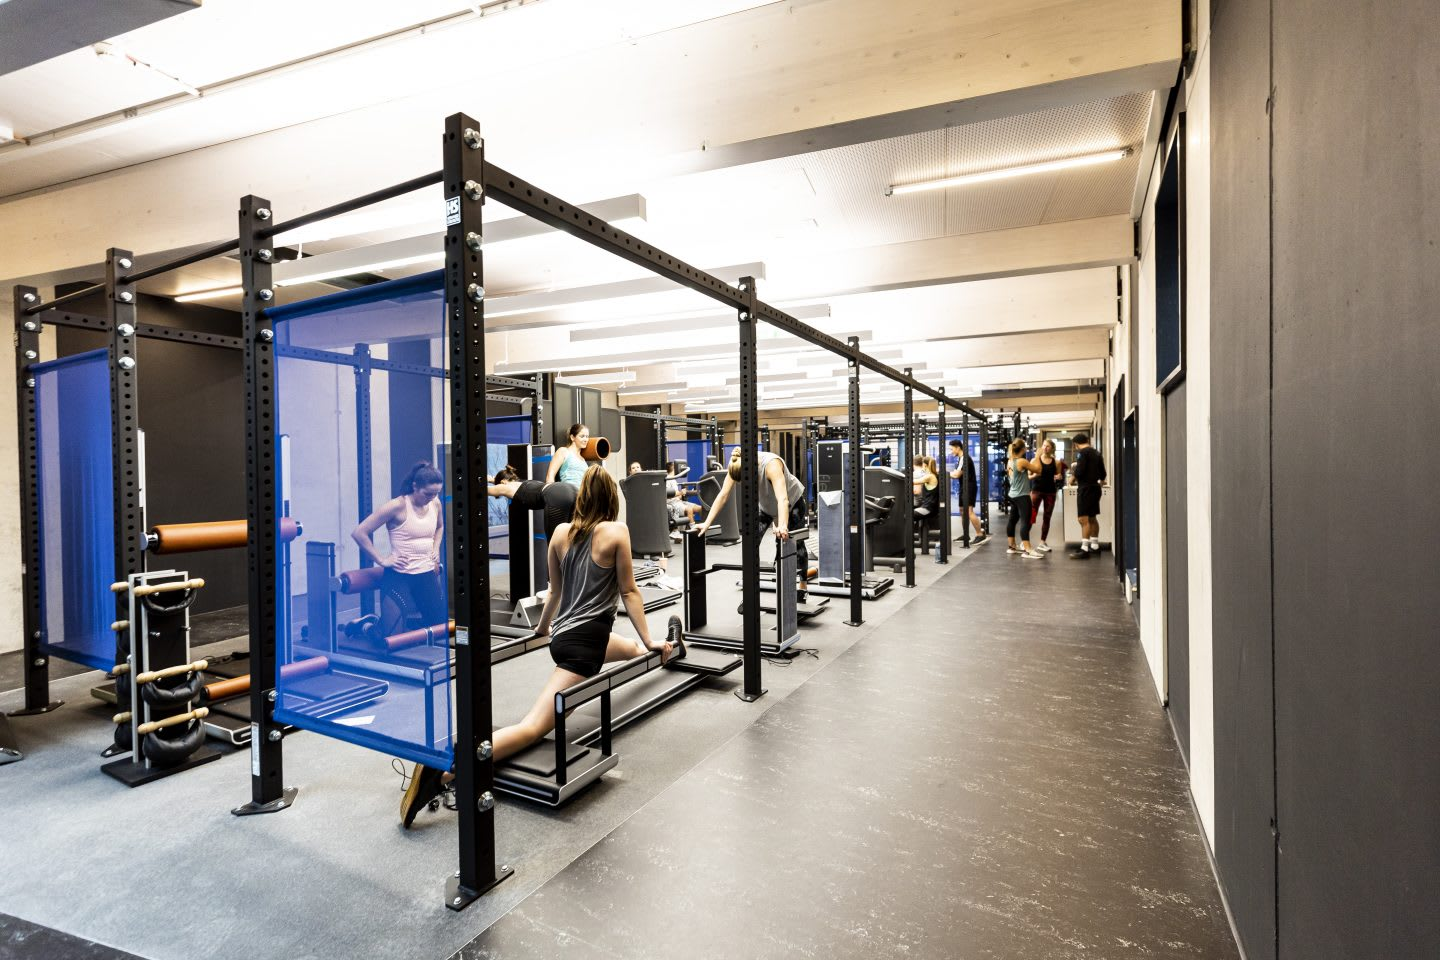 Men and women using gym equipment during a workout class, GYM, Herzogenaurach, adidas, employees, workplace, fitness. sports, culture, active, health, lifestyle